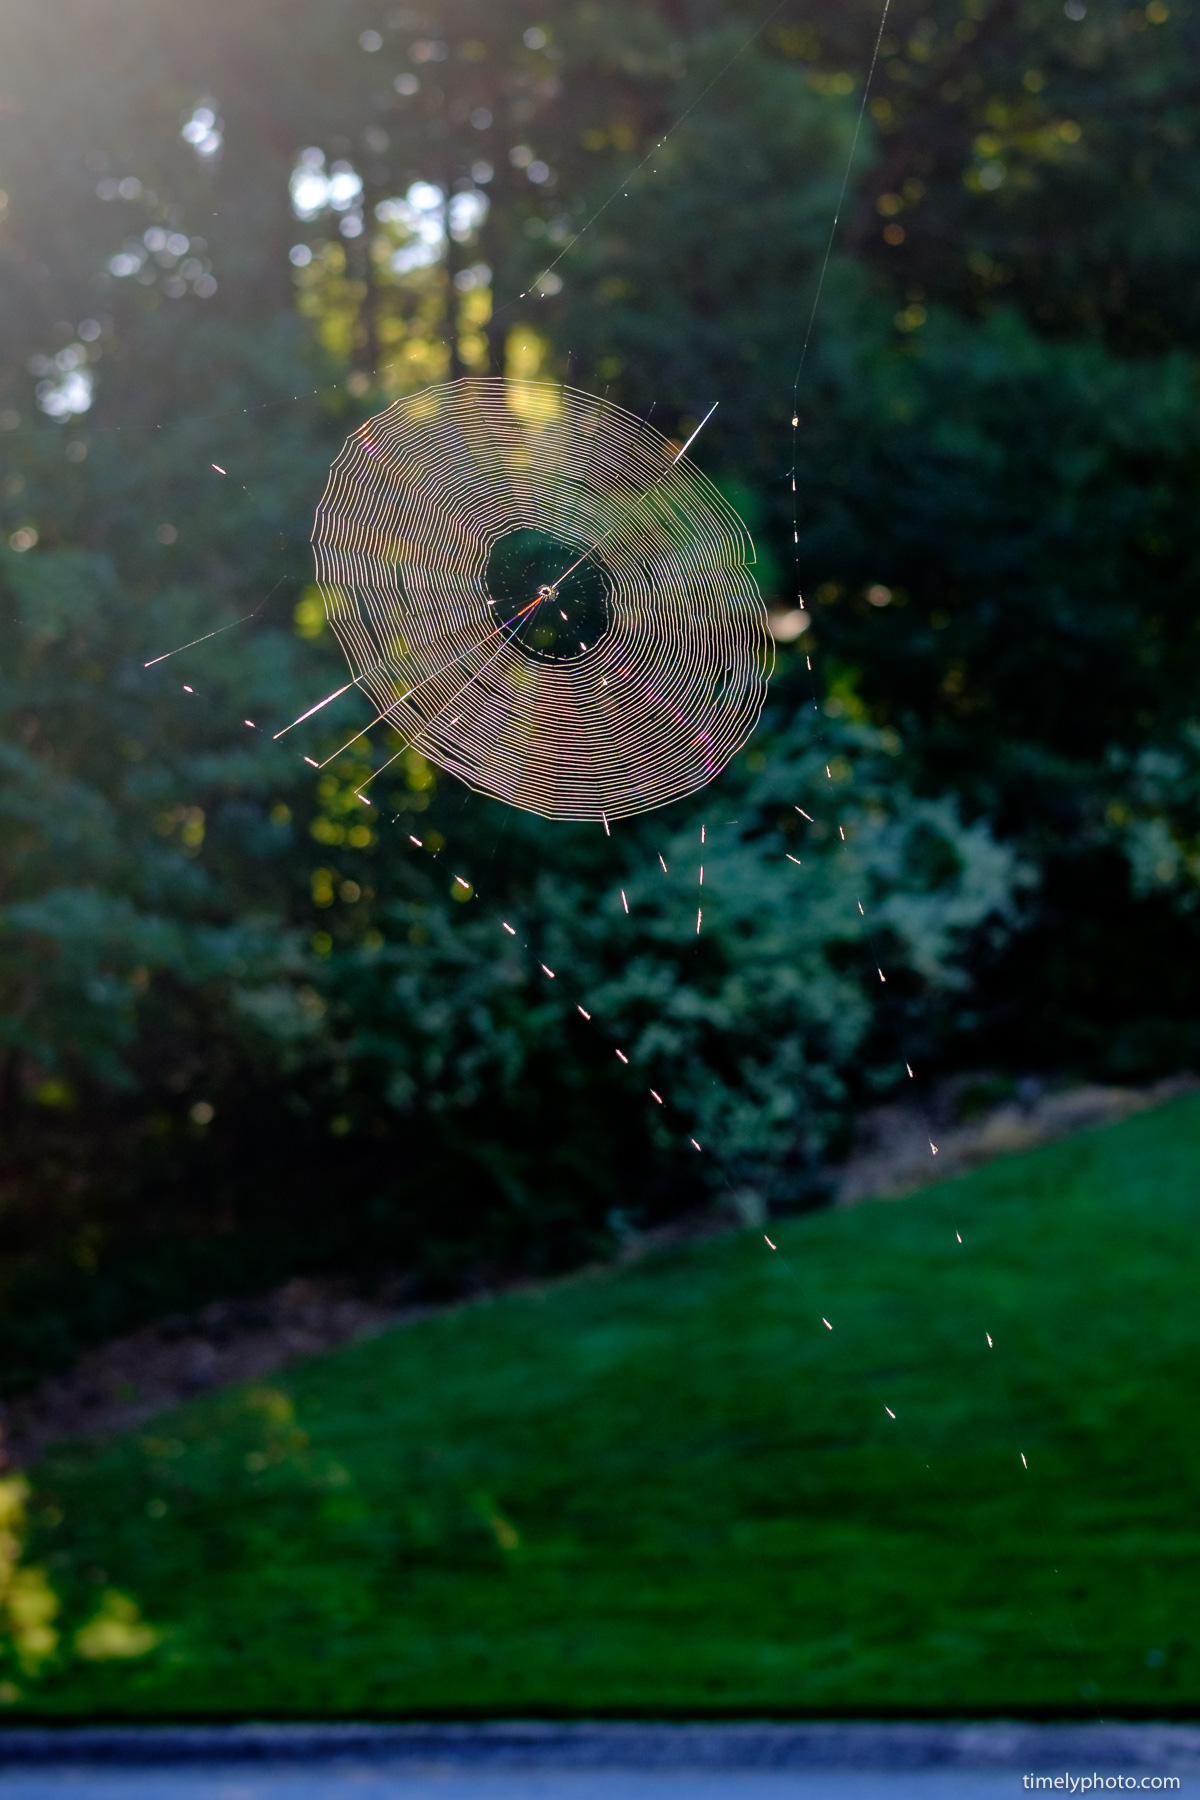 Spider Web. Shot at 200 ISO | 35mm | f/2.8 | 1/250/sec on Fujifilm X-T2